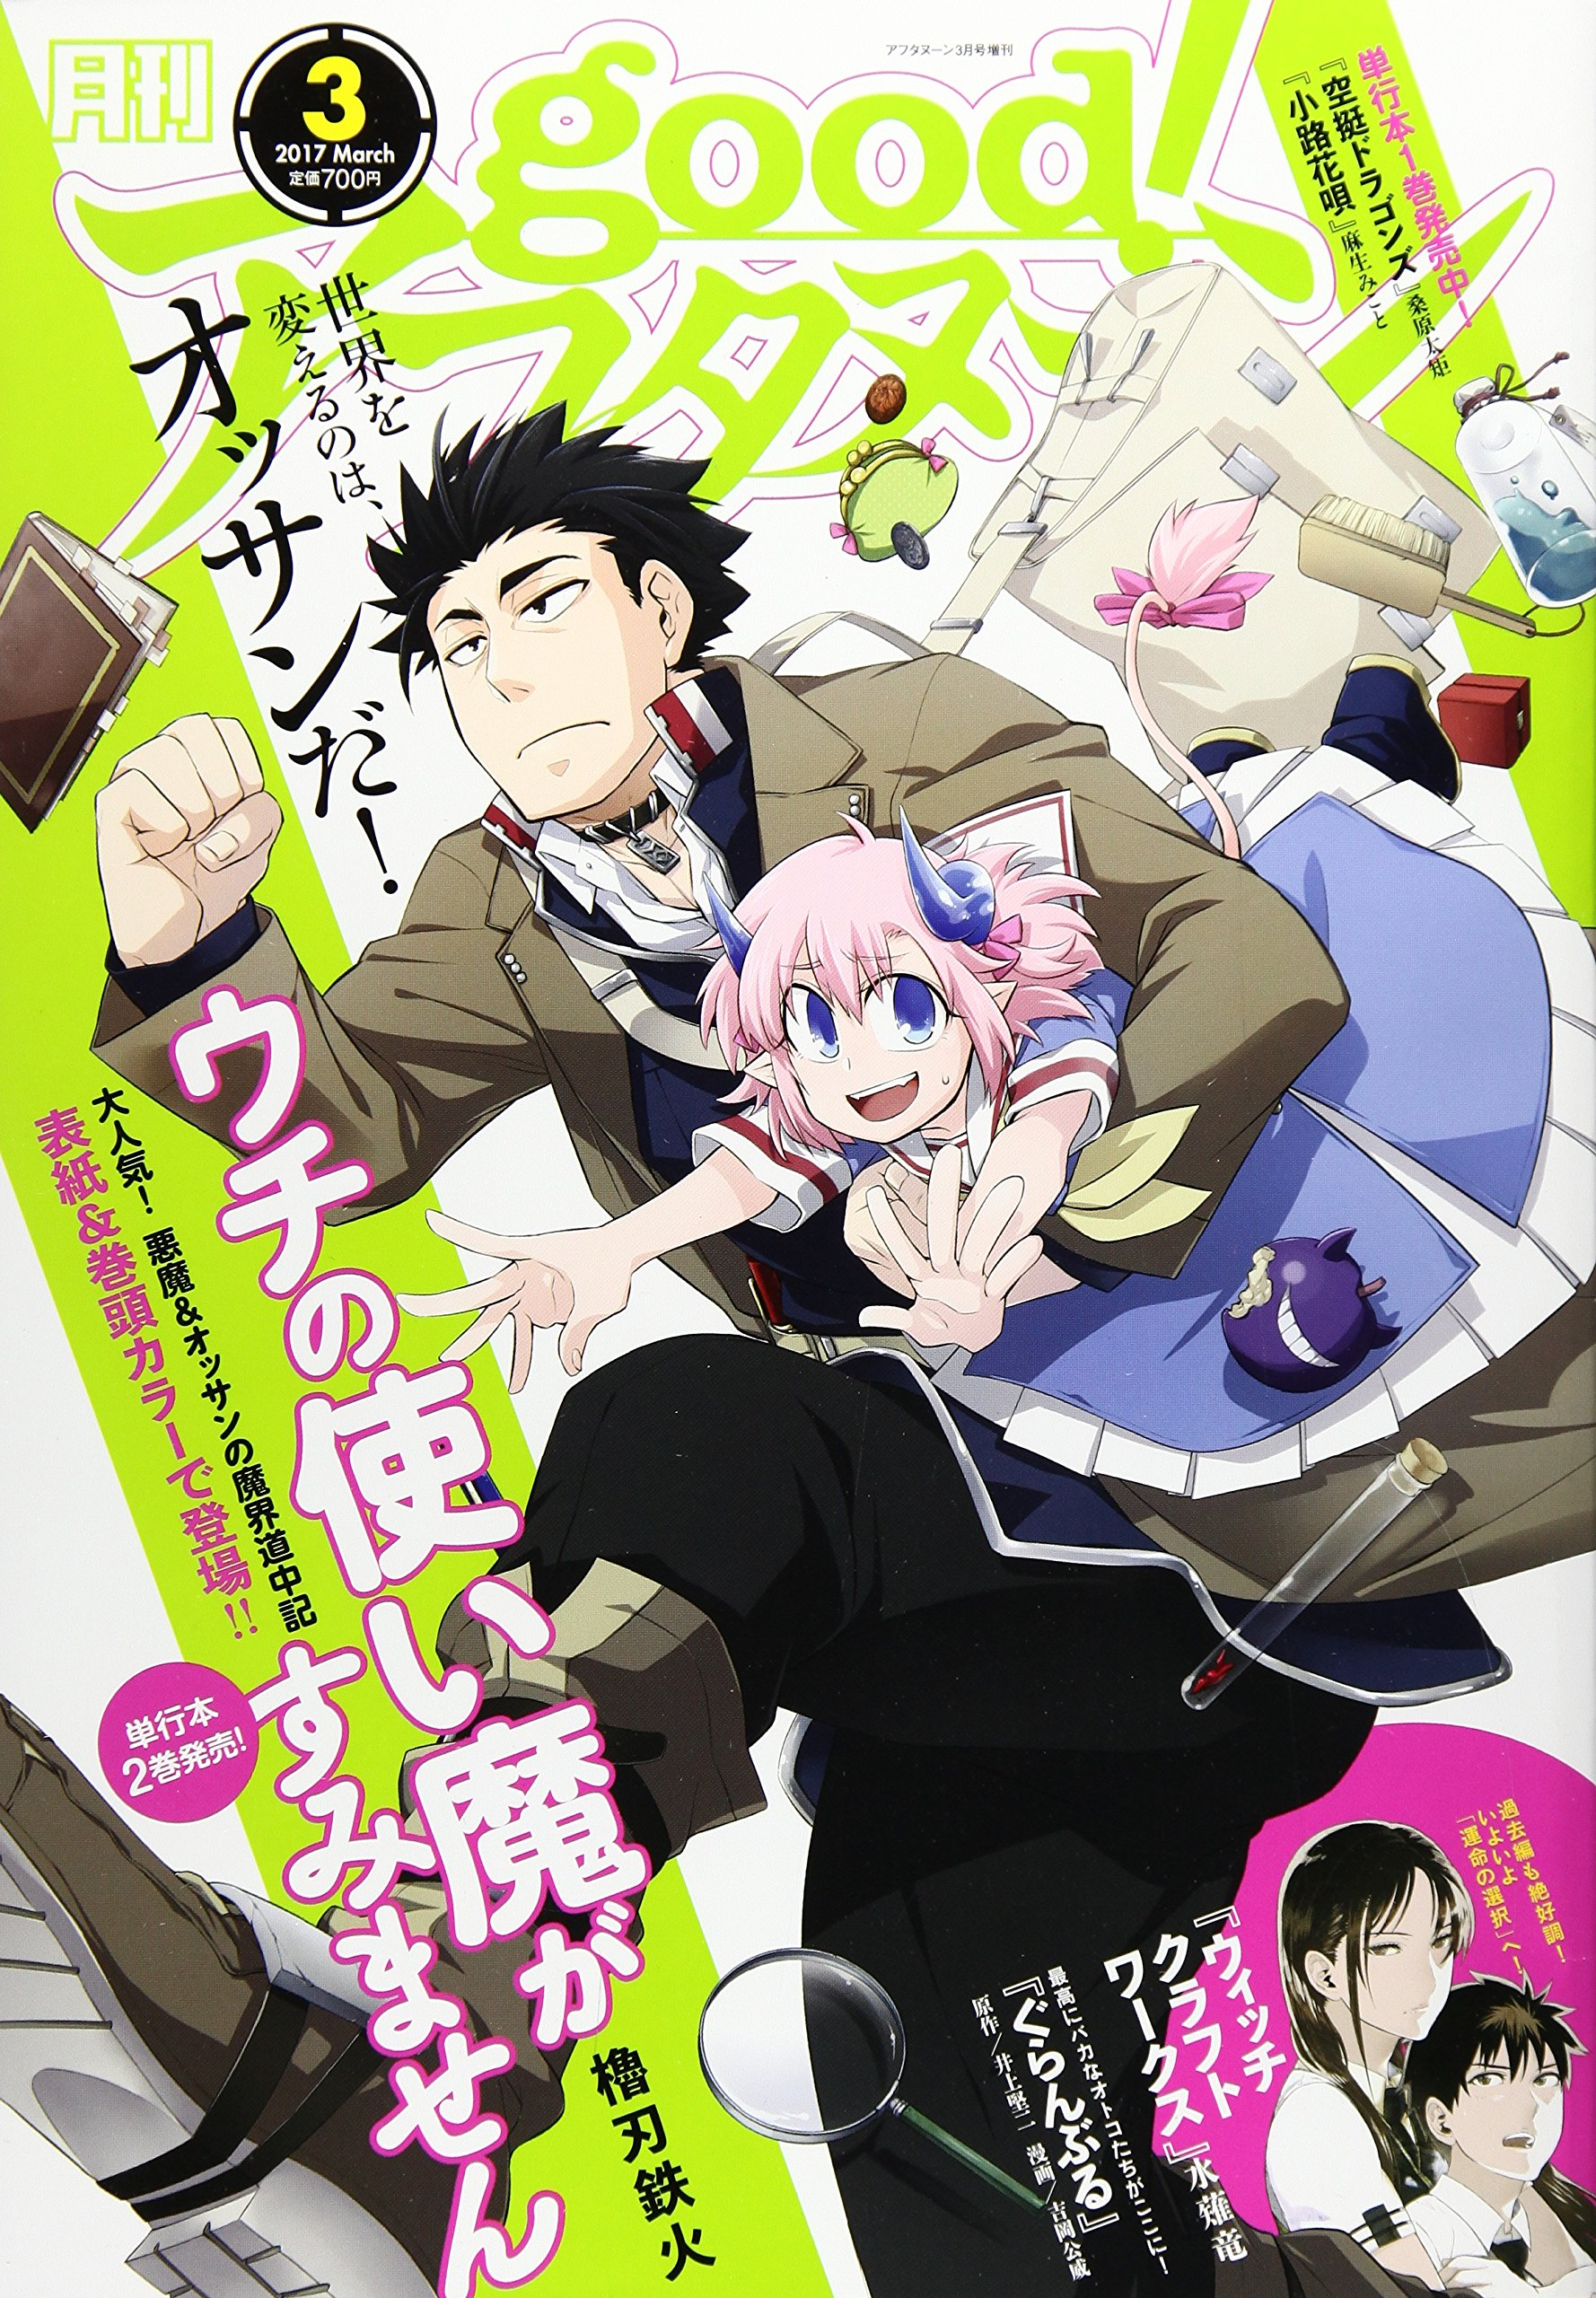 Read Online good! Afternoon ~ Japanese Comic (Manga) Magazine MARCH 2017 Issue [JAPANESE EDITION] Tracked & Insured Shipping MAR 3 pdf epub